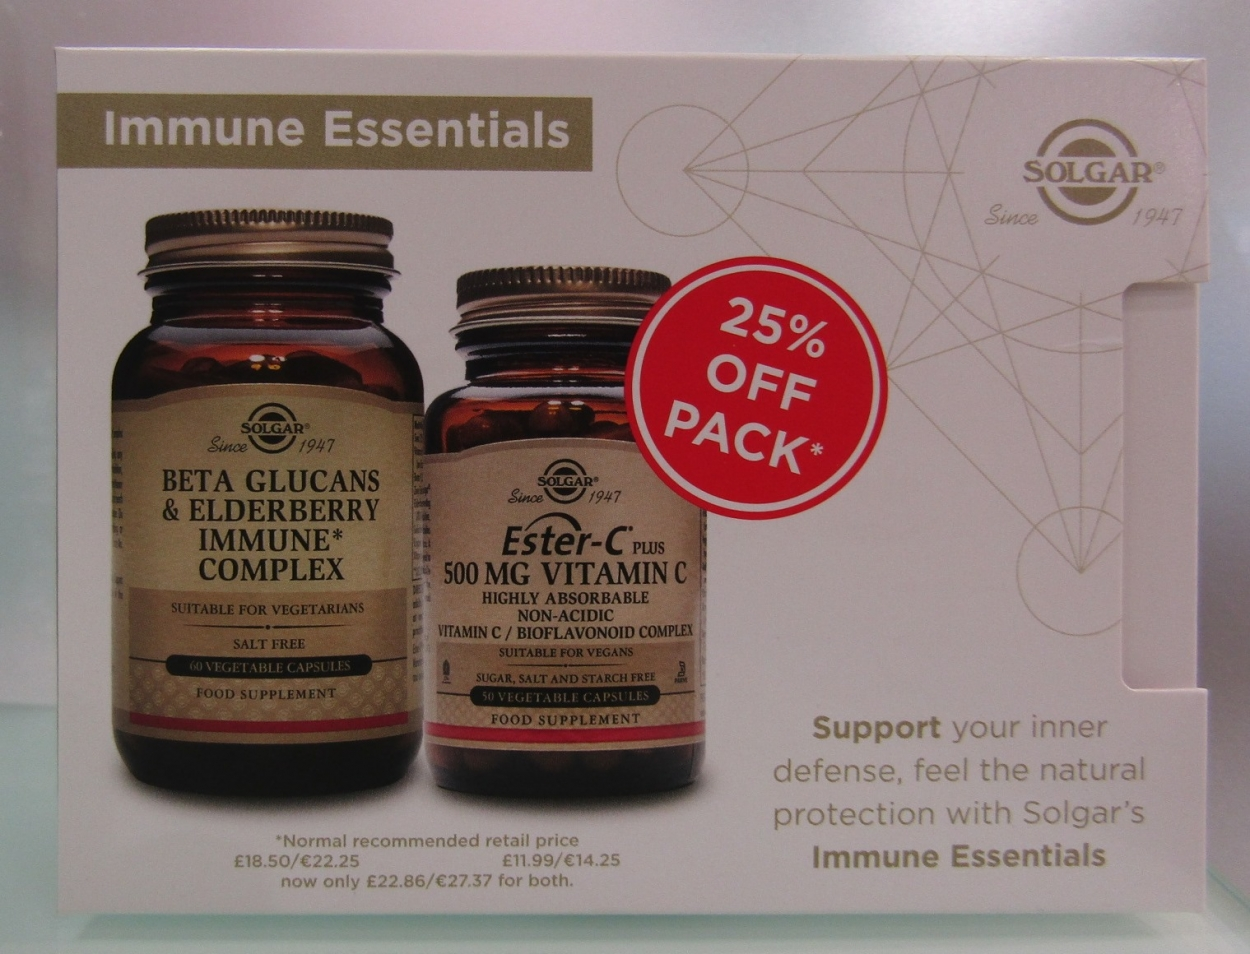 Solgar Immune Essentials